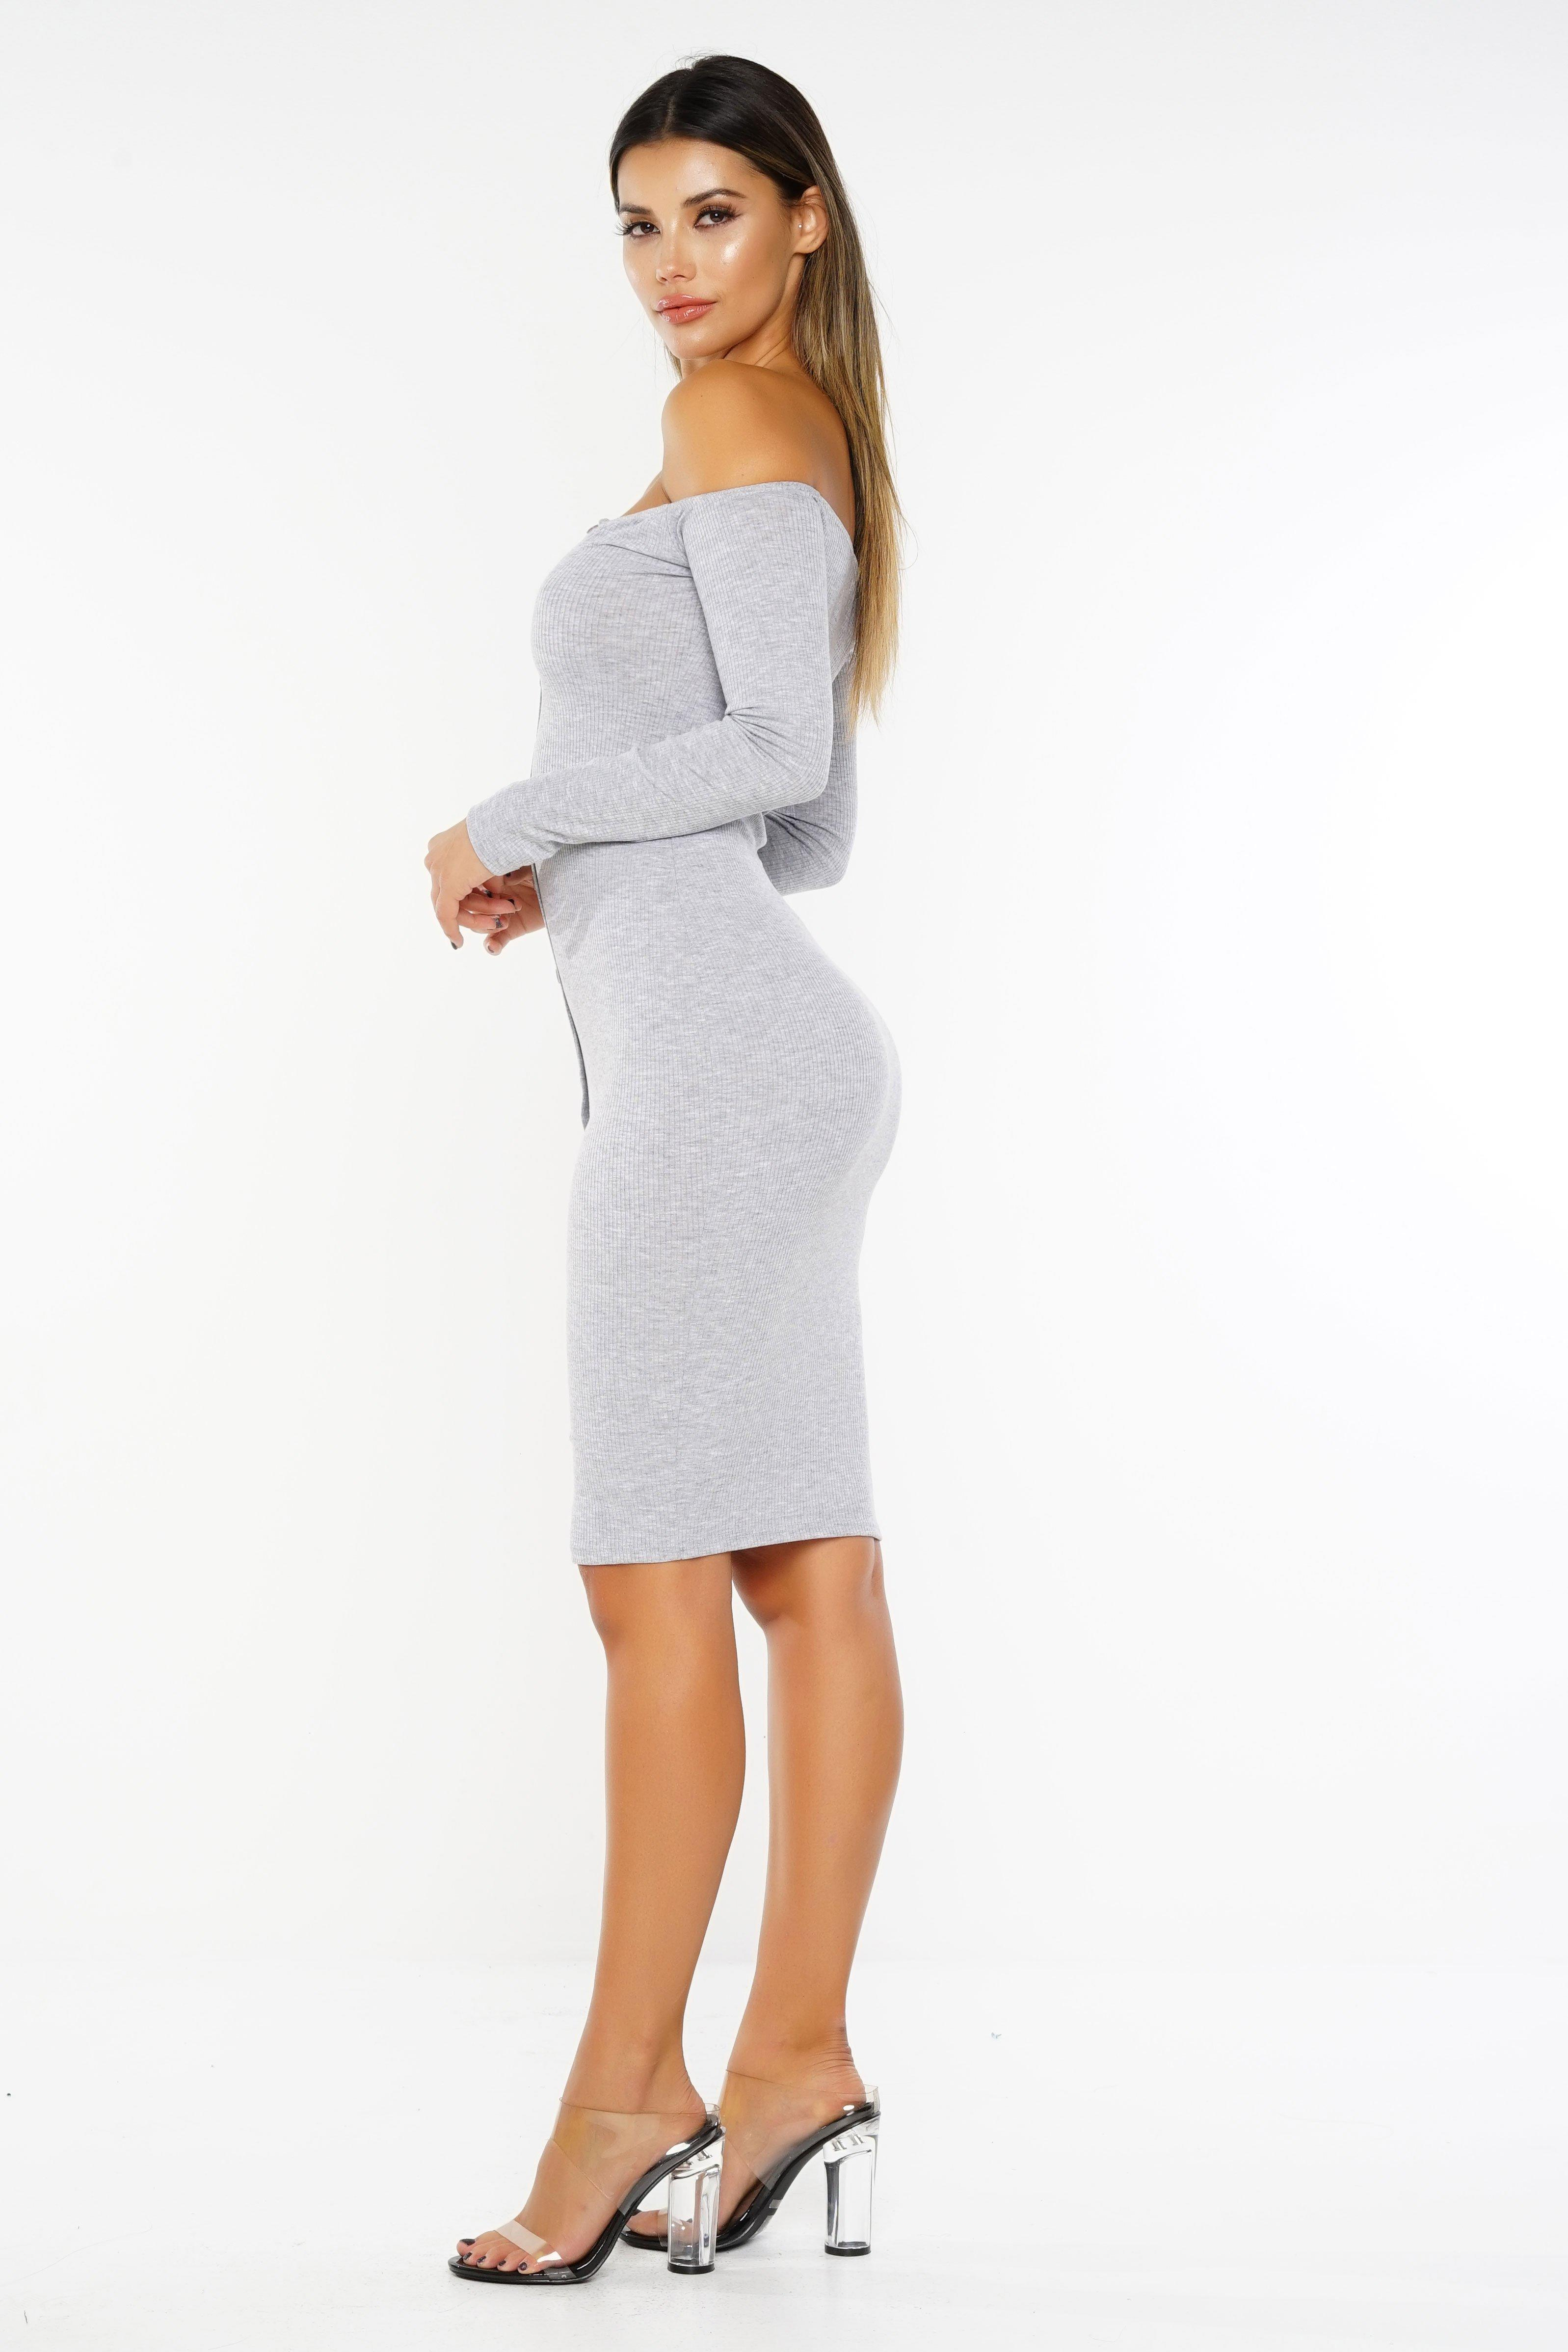 562cf35ae3634 Emily Dress - Grey from WantMyLook